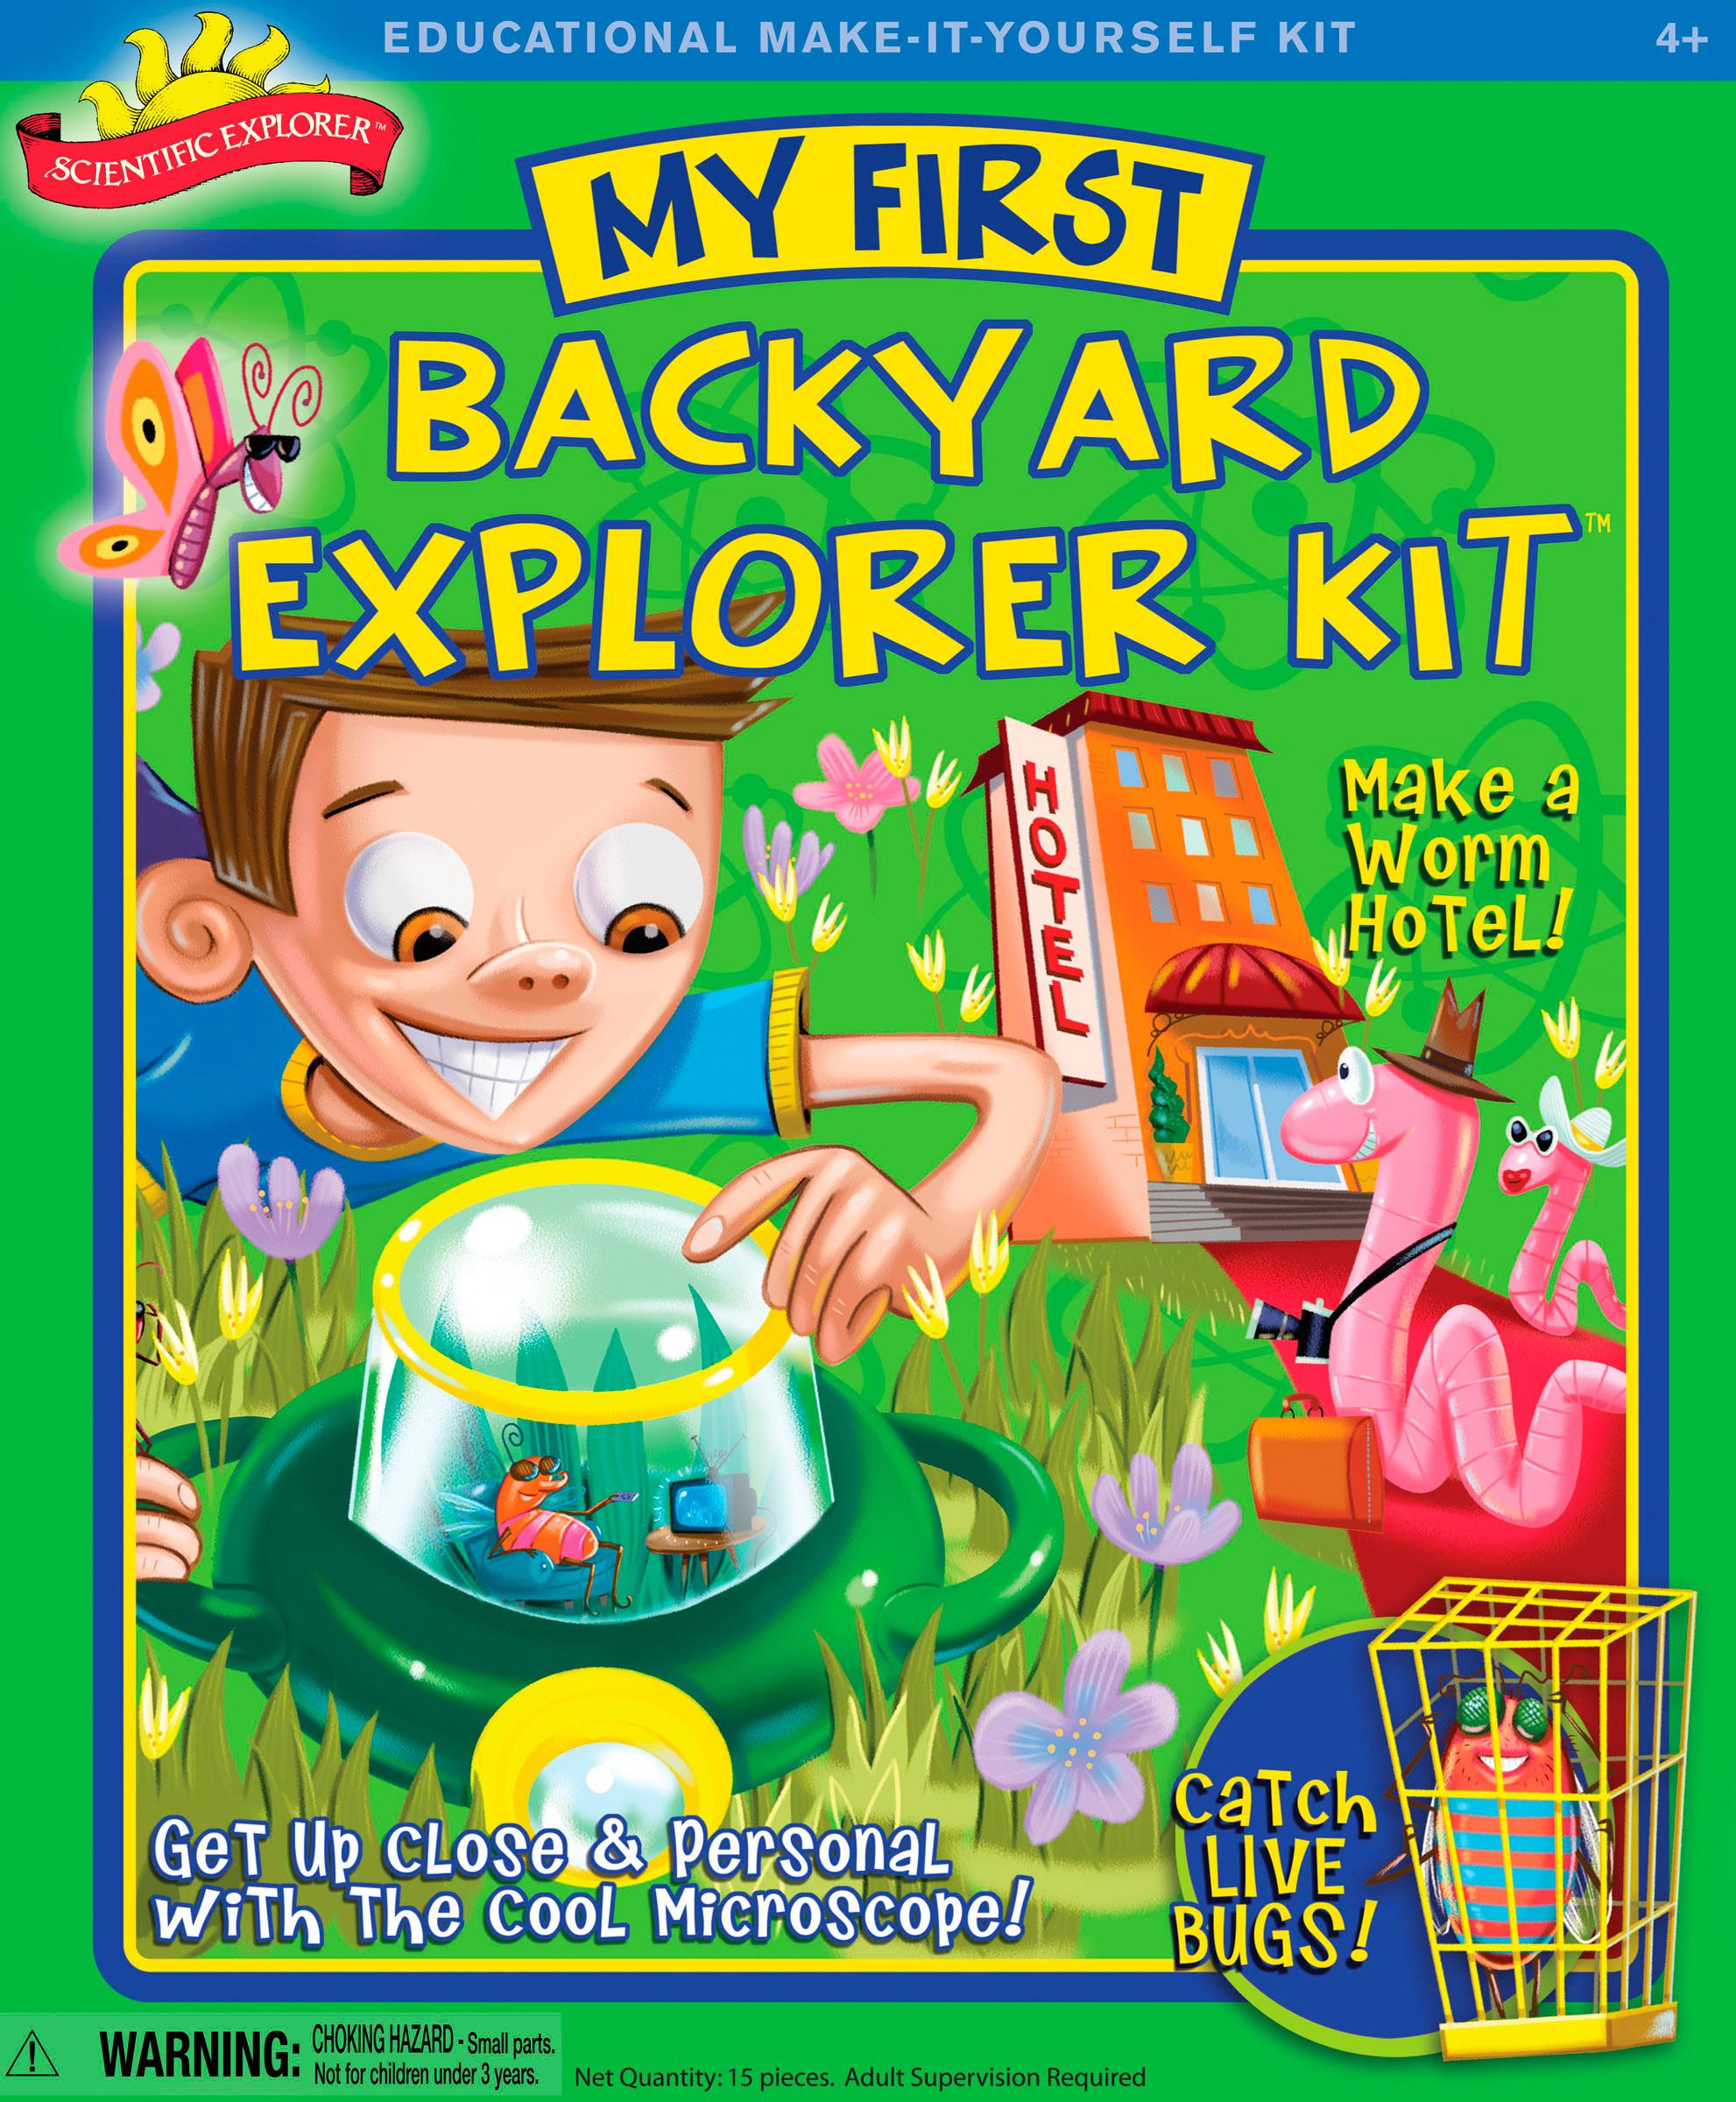 Amazon Scientific Explorer Backyard Kit Toys & Games